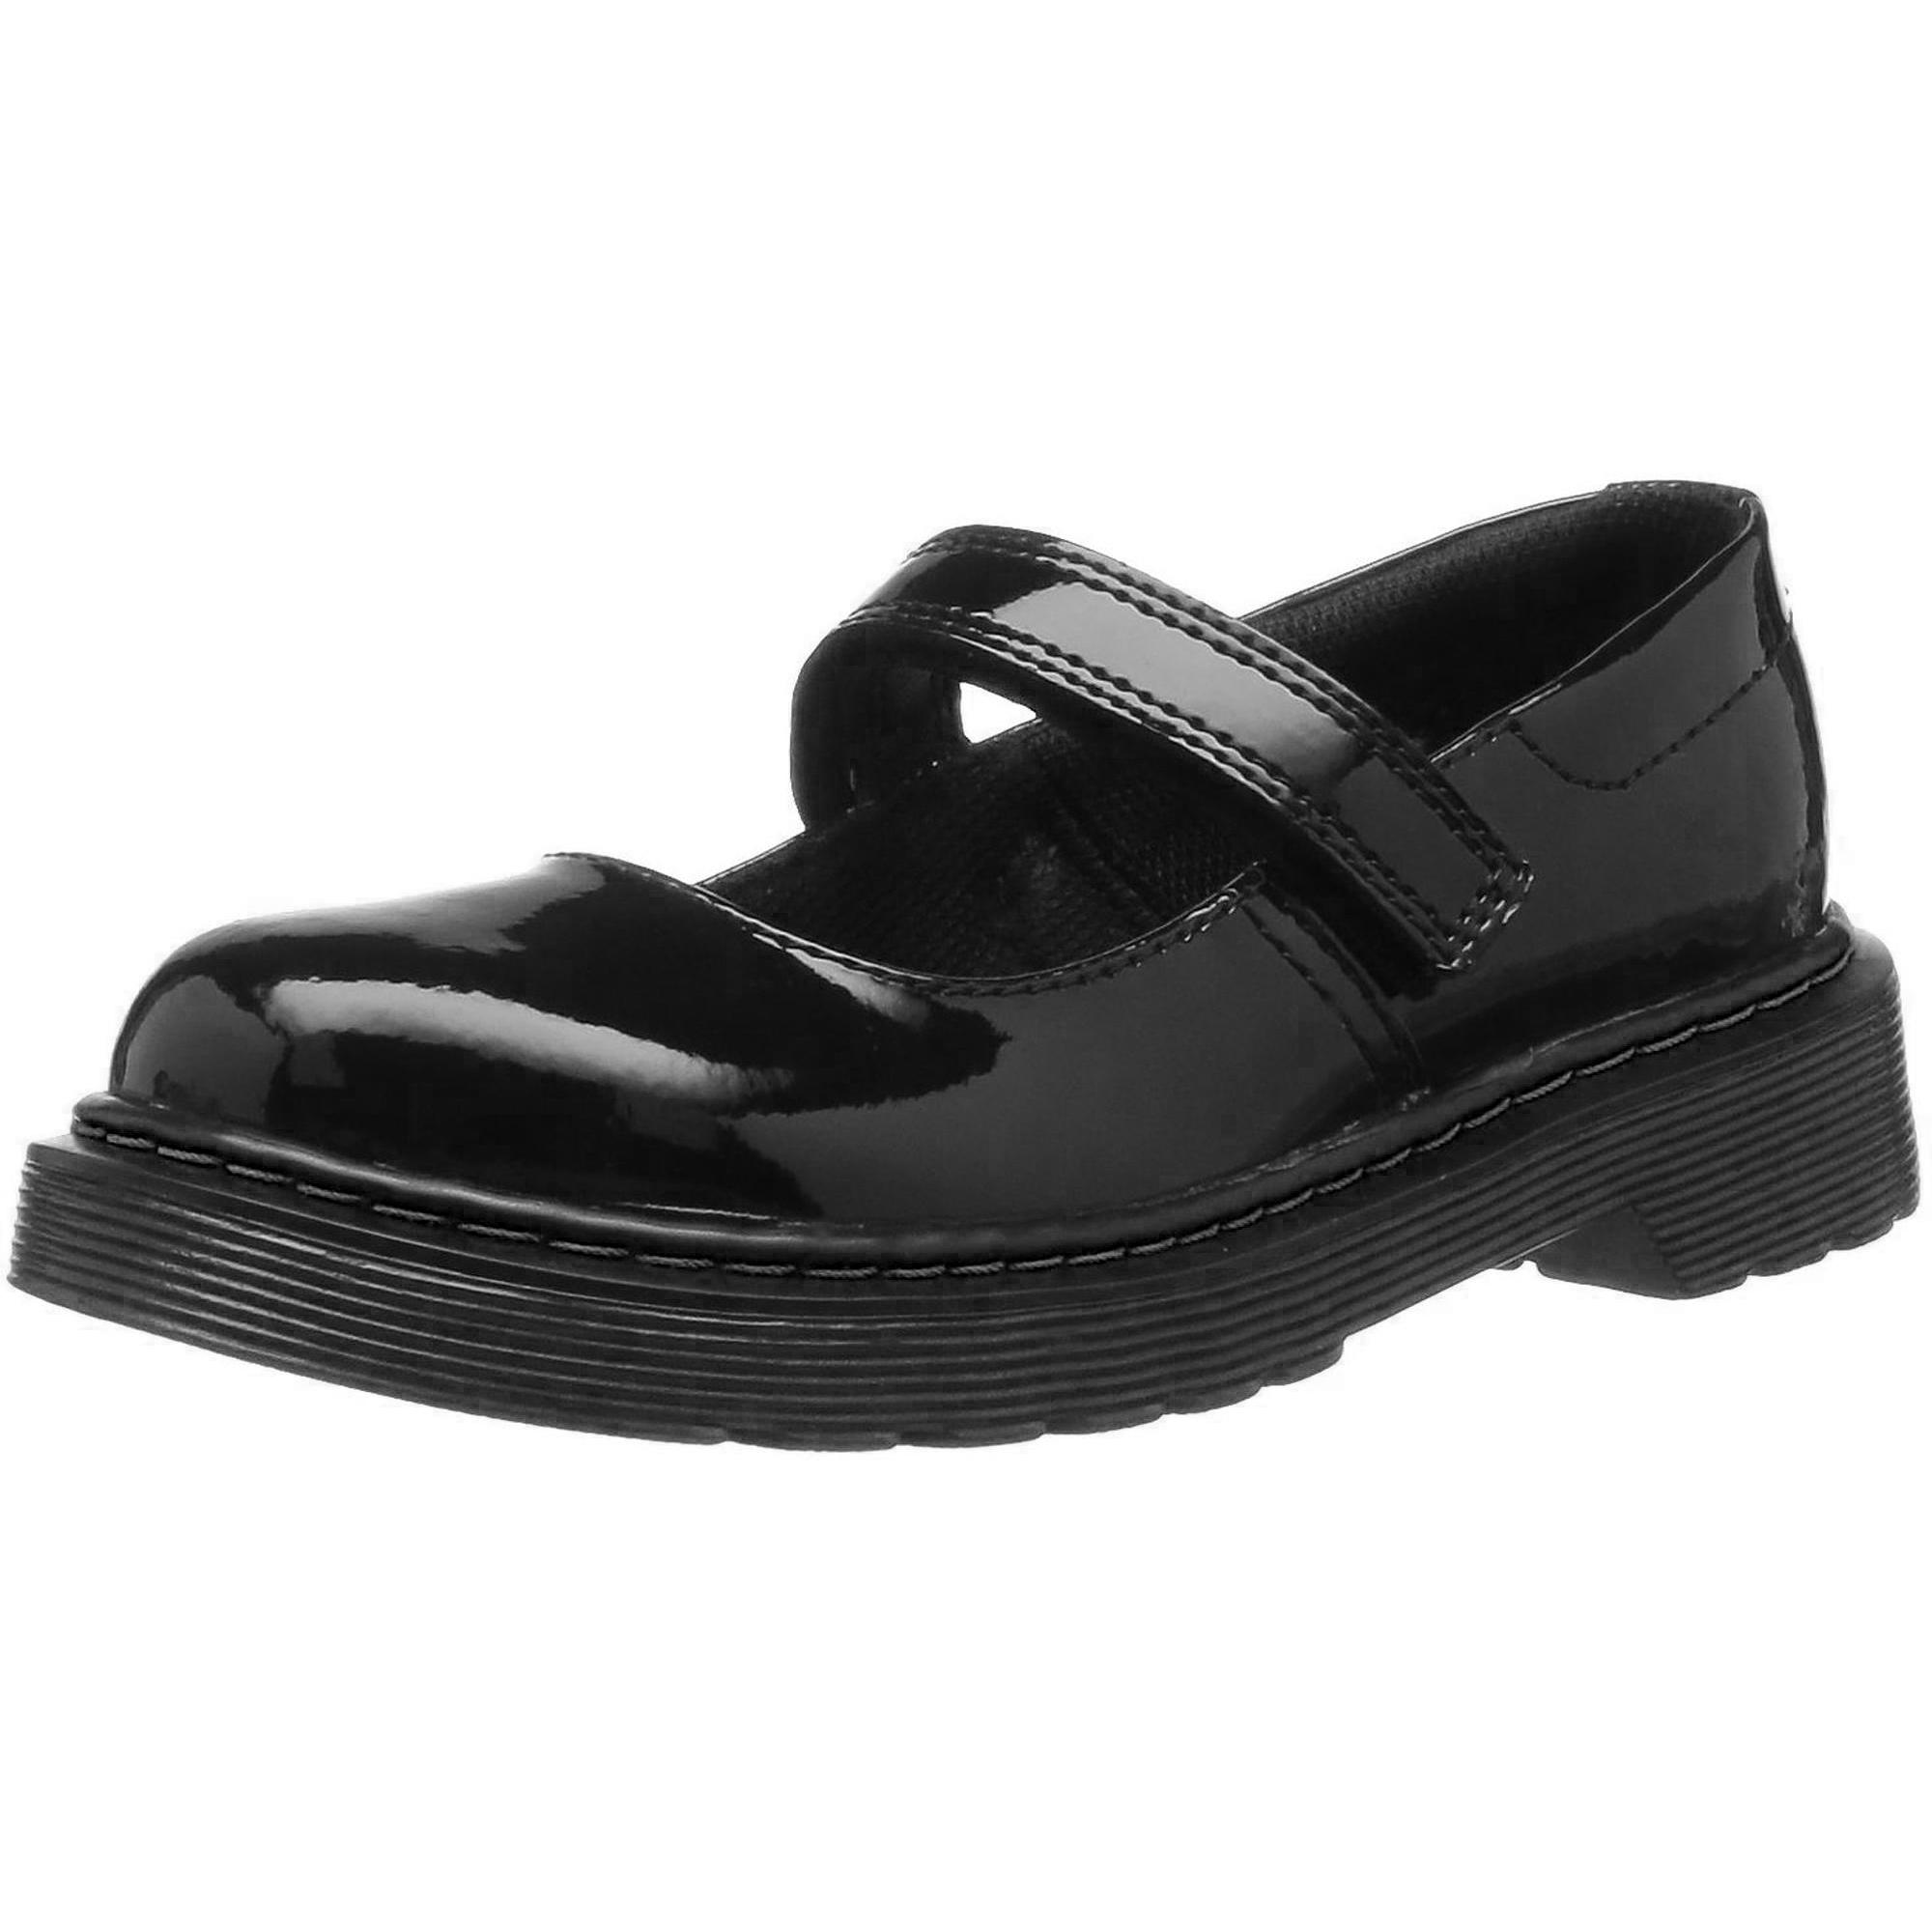 Dr.Martens Maccy Black Youth Patent Lamper Leather Mary Jane Shoes